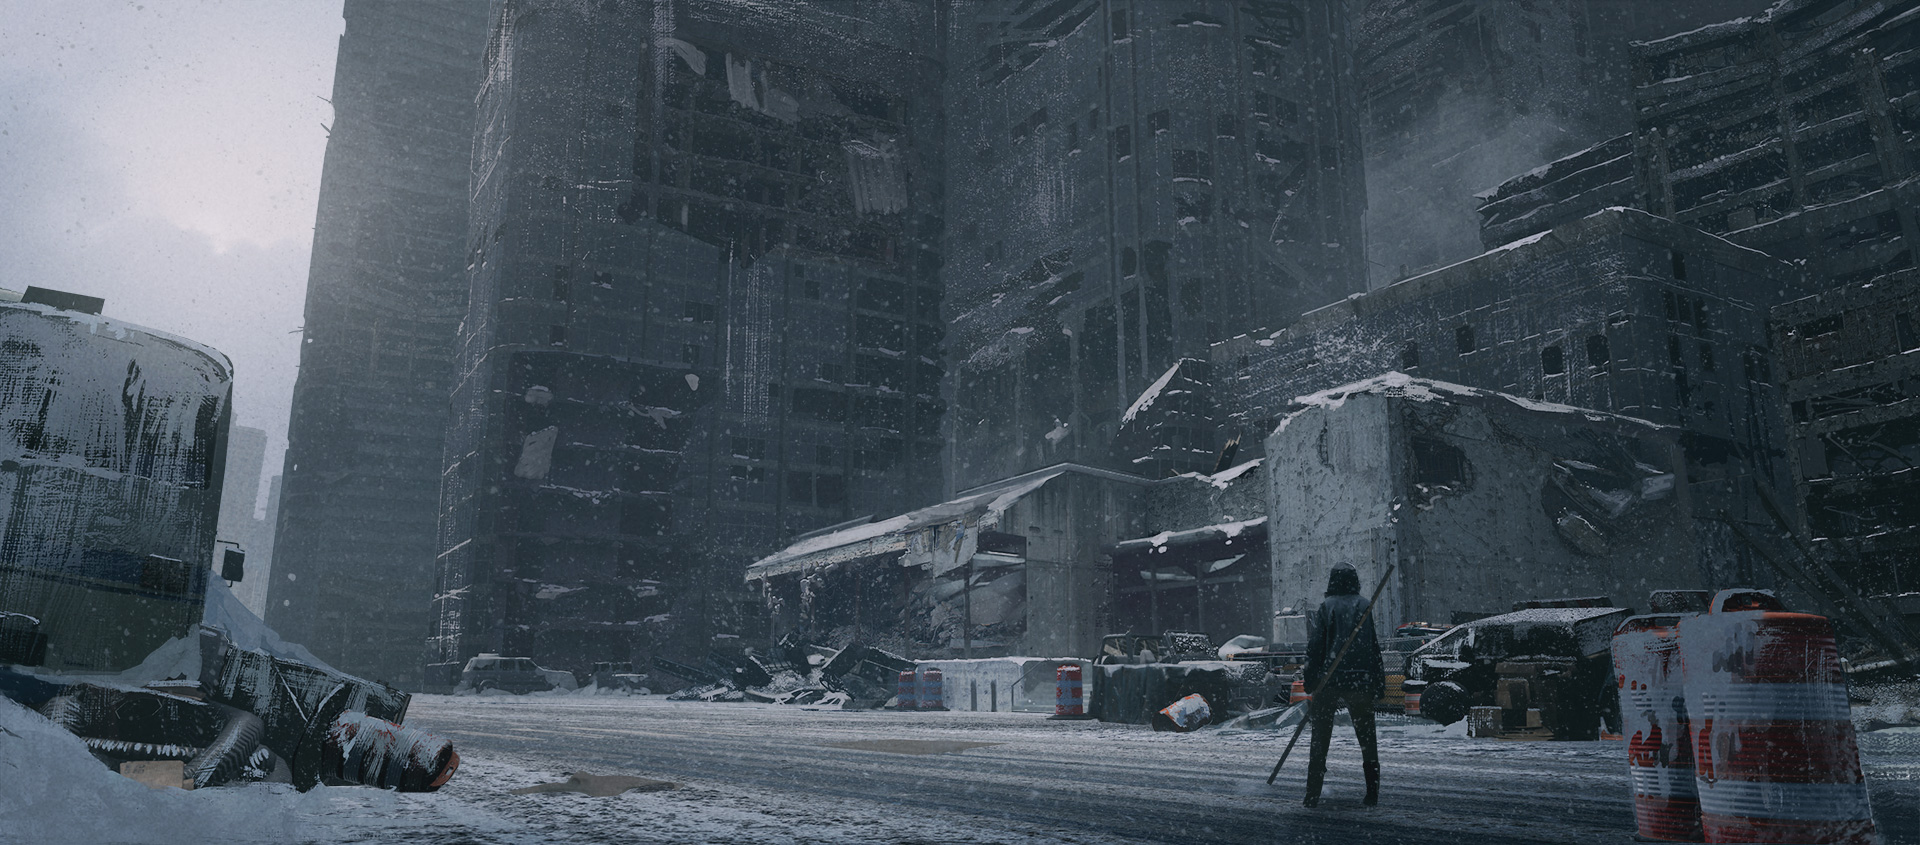 The ruined buildings of a broken city stand above a cloaked character within NieR Replicant ver.1.22474487139